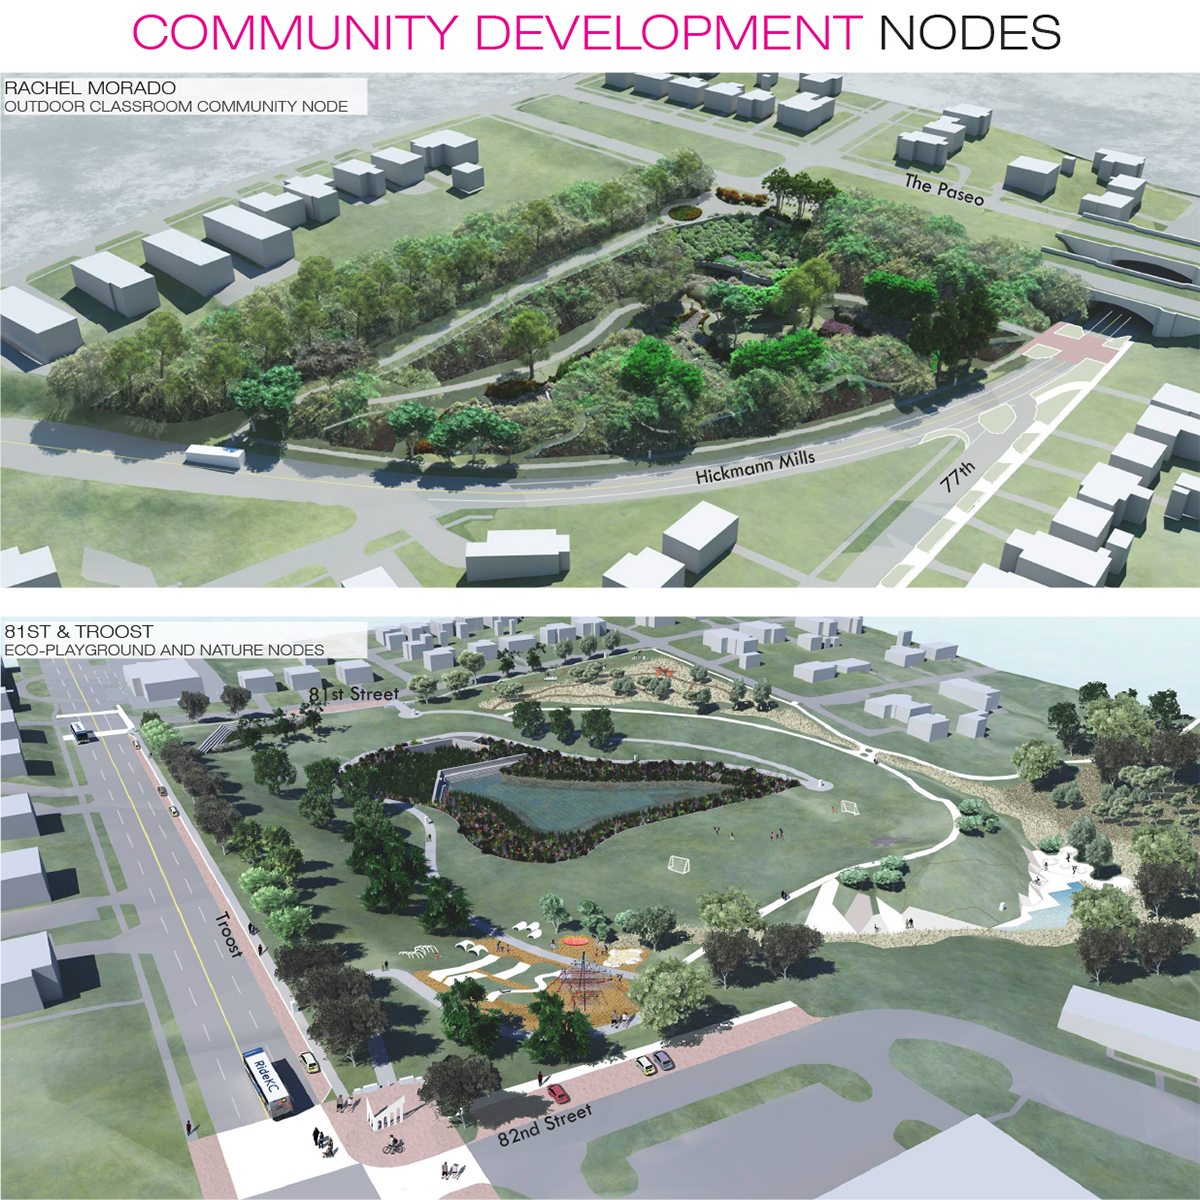 A rendering of Rachel Morado outdoor classroom and an ecoplayground at 81st and Troost.